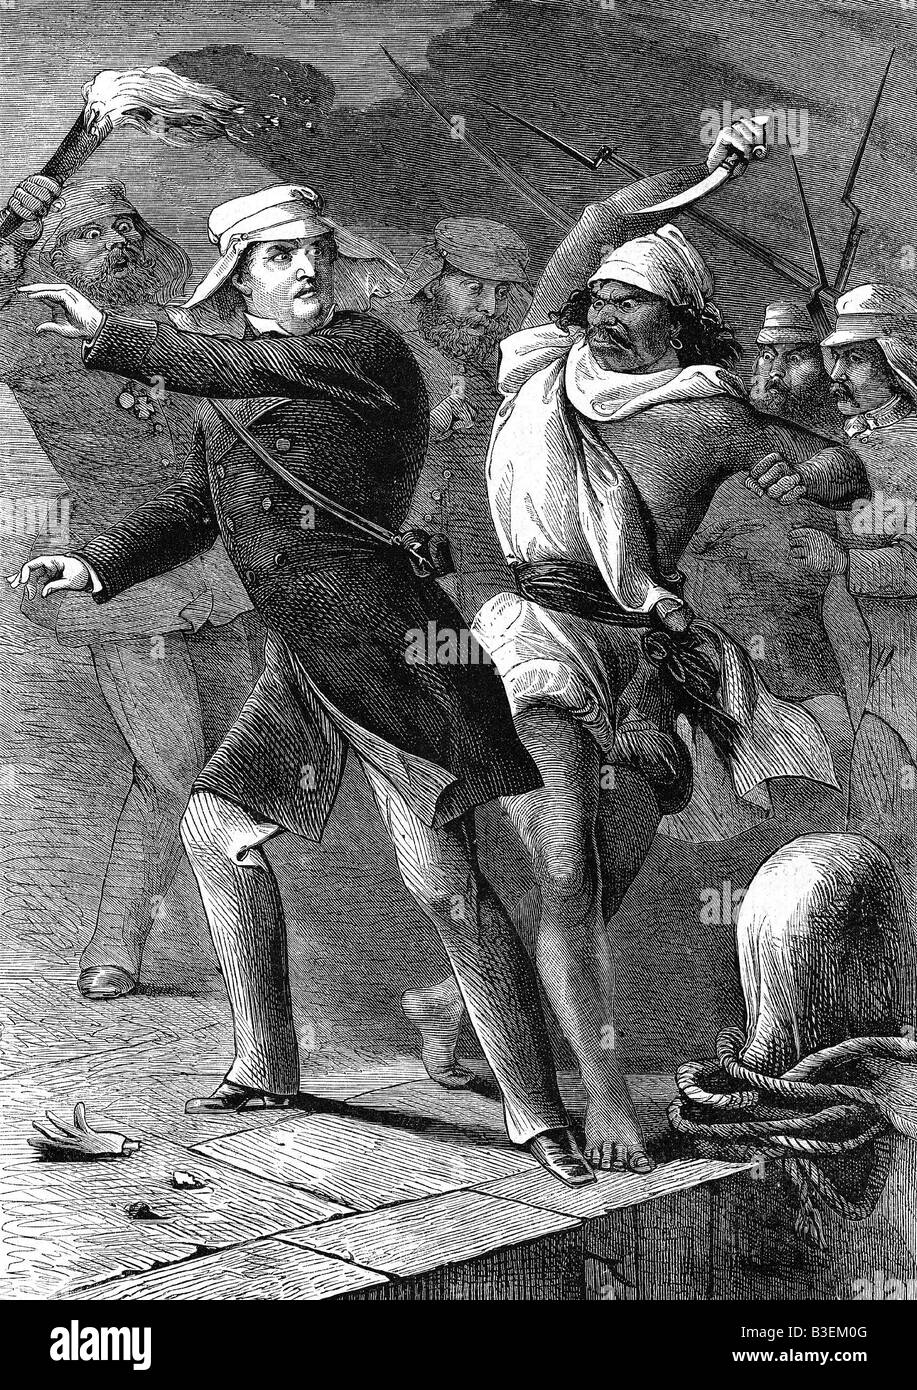 Whalers in action wood engraving published in 1855 stock illustration - Geography Travel India Indian Mutiny 1857 1858 Killing Of General Sir